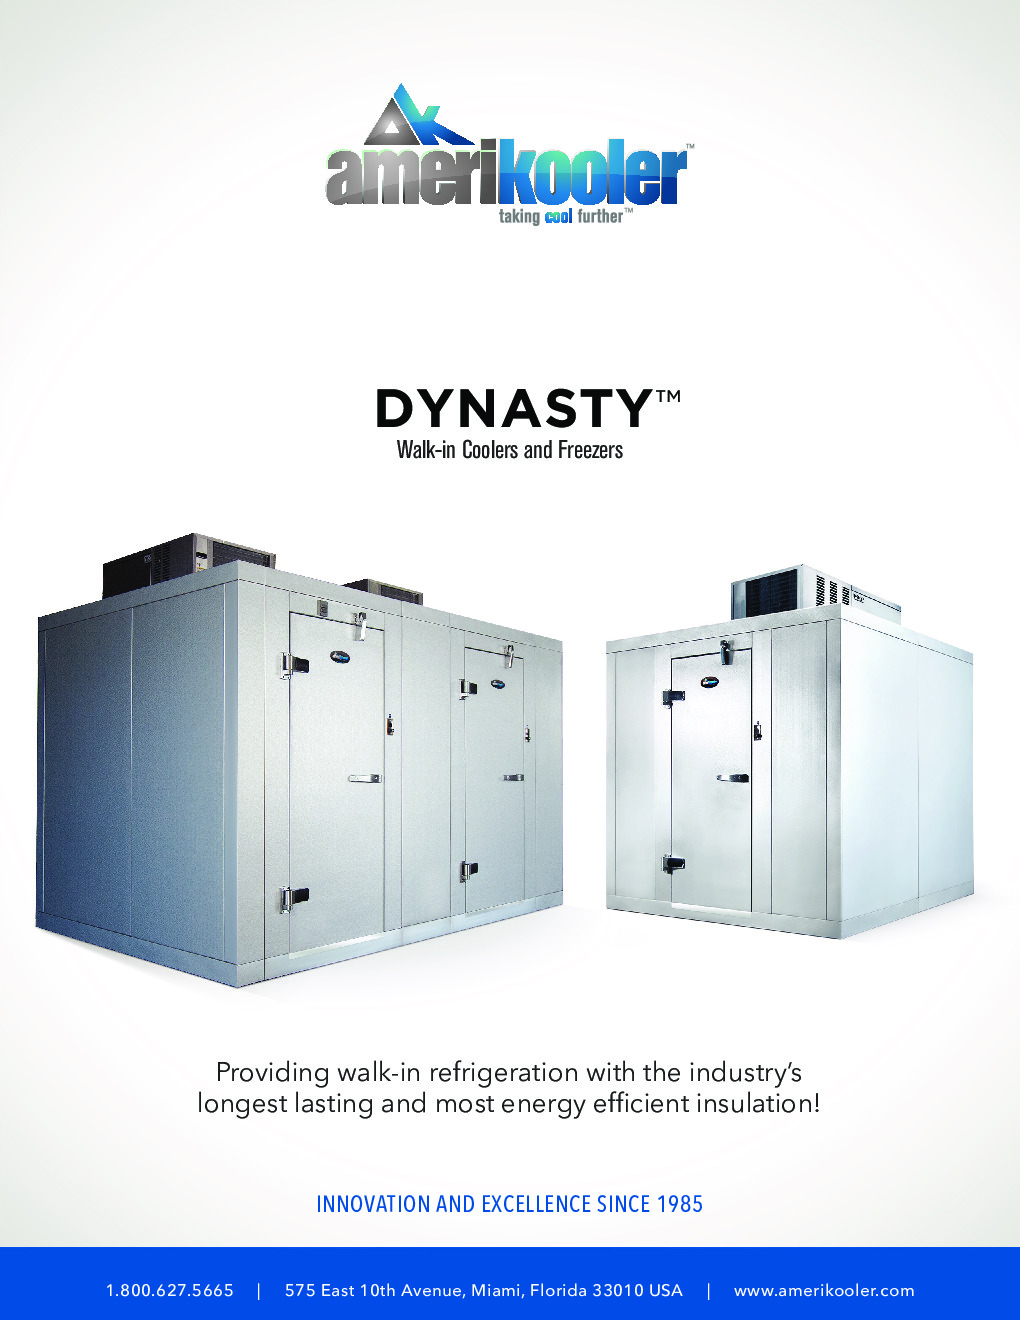 AmeriKooler DW081477F-7/7-SC 8' X 14' Walk-In Cooler, 7' L Cooler with Floor and 7' L Freezer, Self Contained